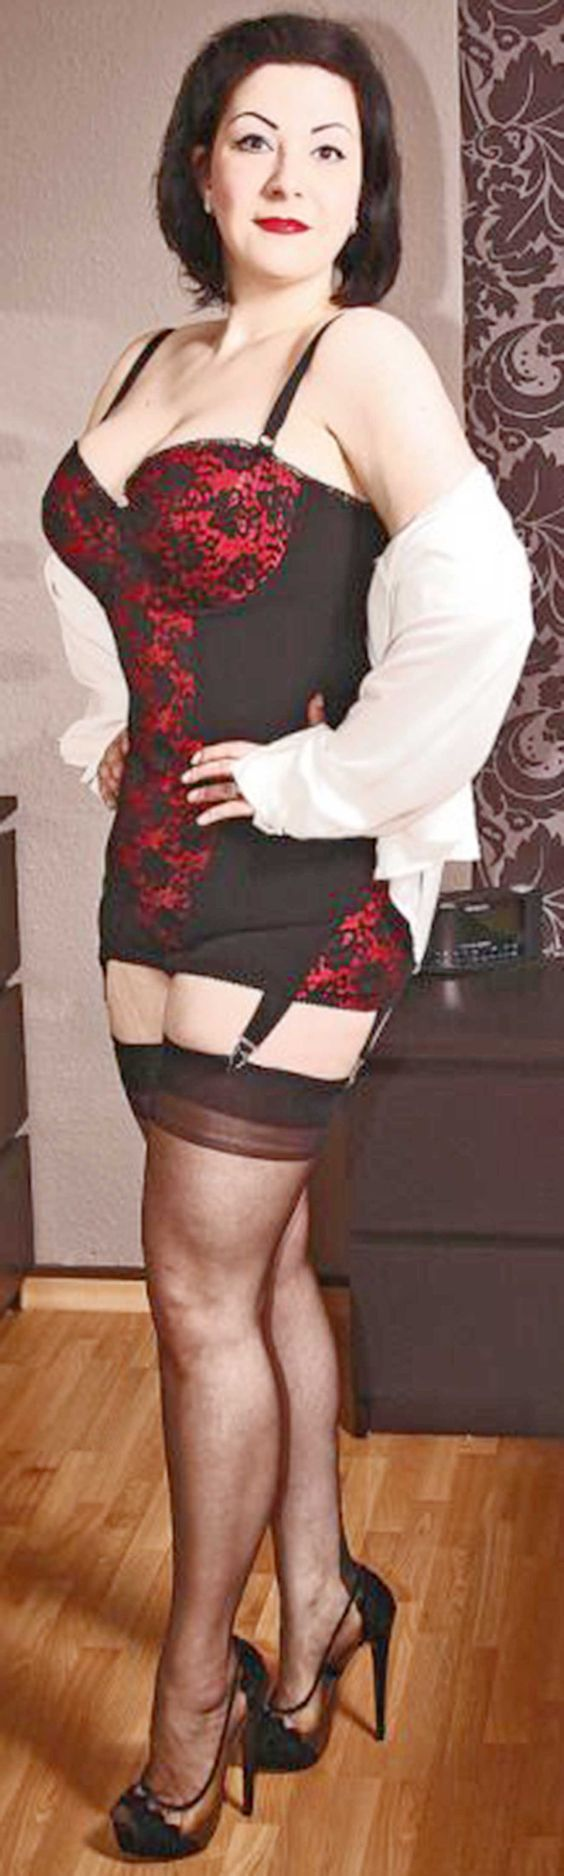 Curvy And Attractive  Open Bottom Girdles In 2019 -5068